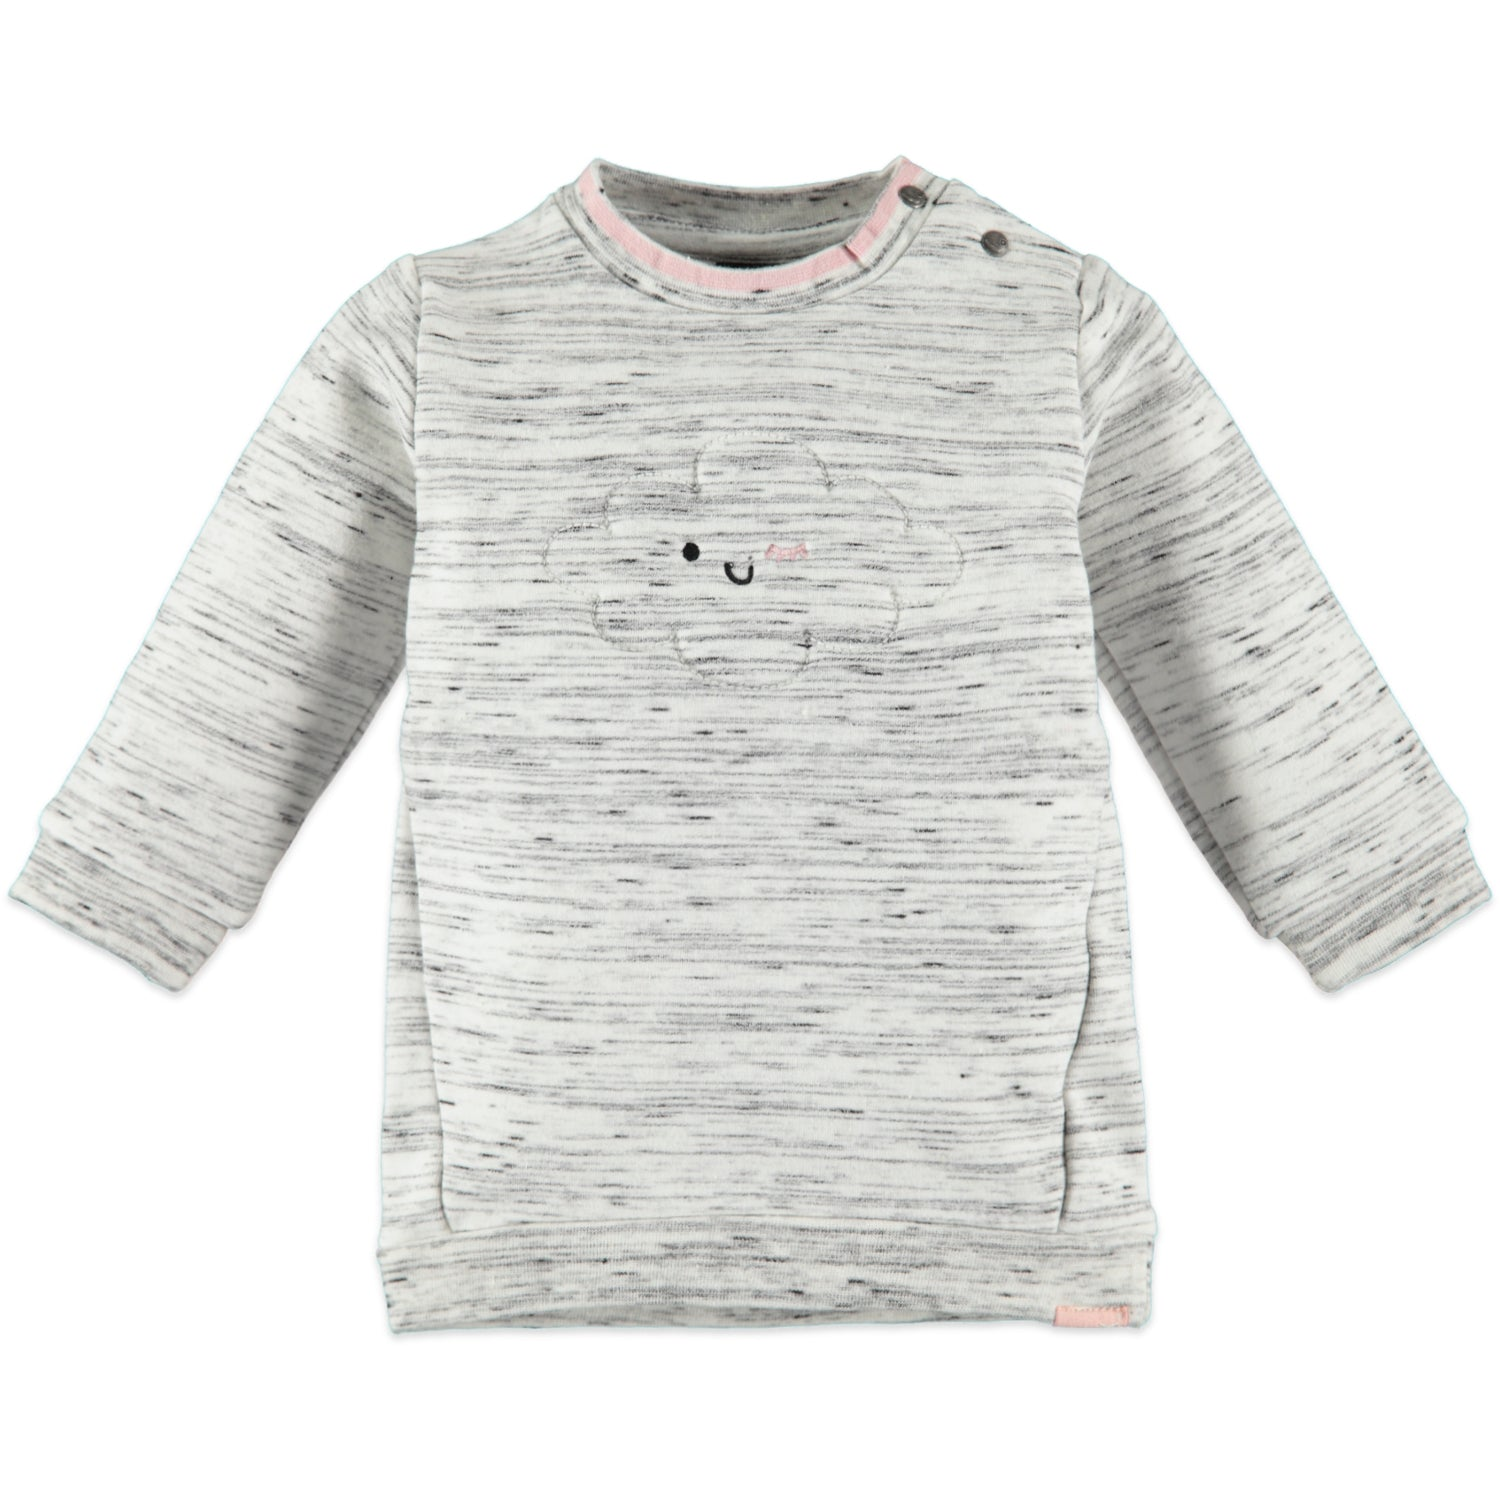 Babyface Sweatshirt Dress - Cloud